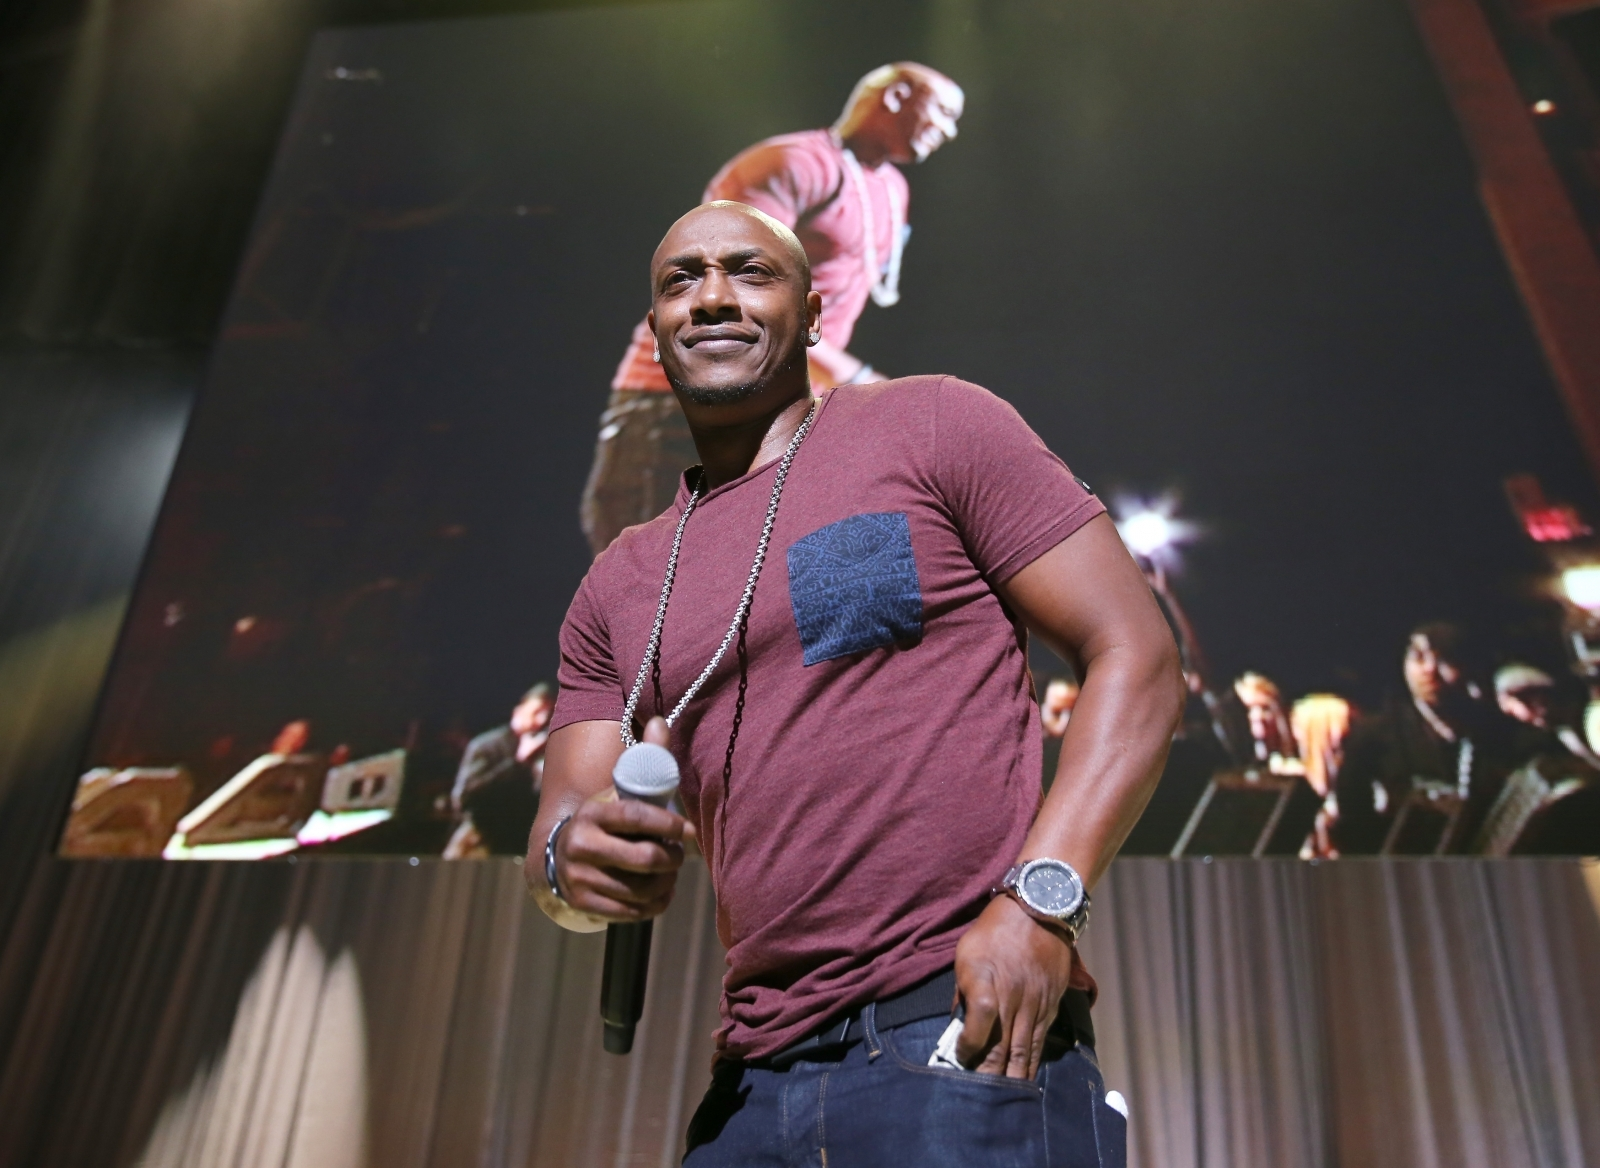 Rapper Mystikal Charged With First Degree Rape in Louisiana